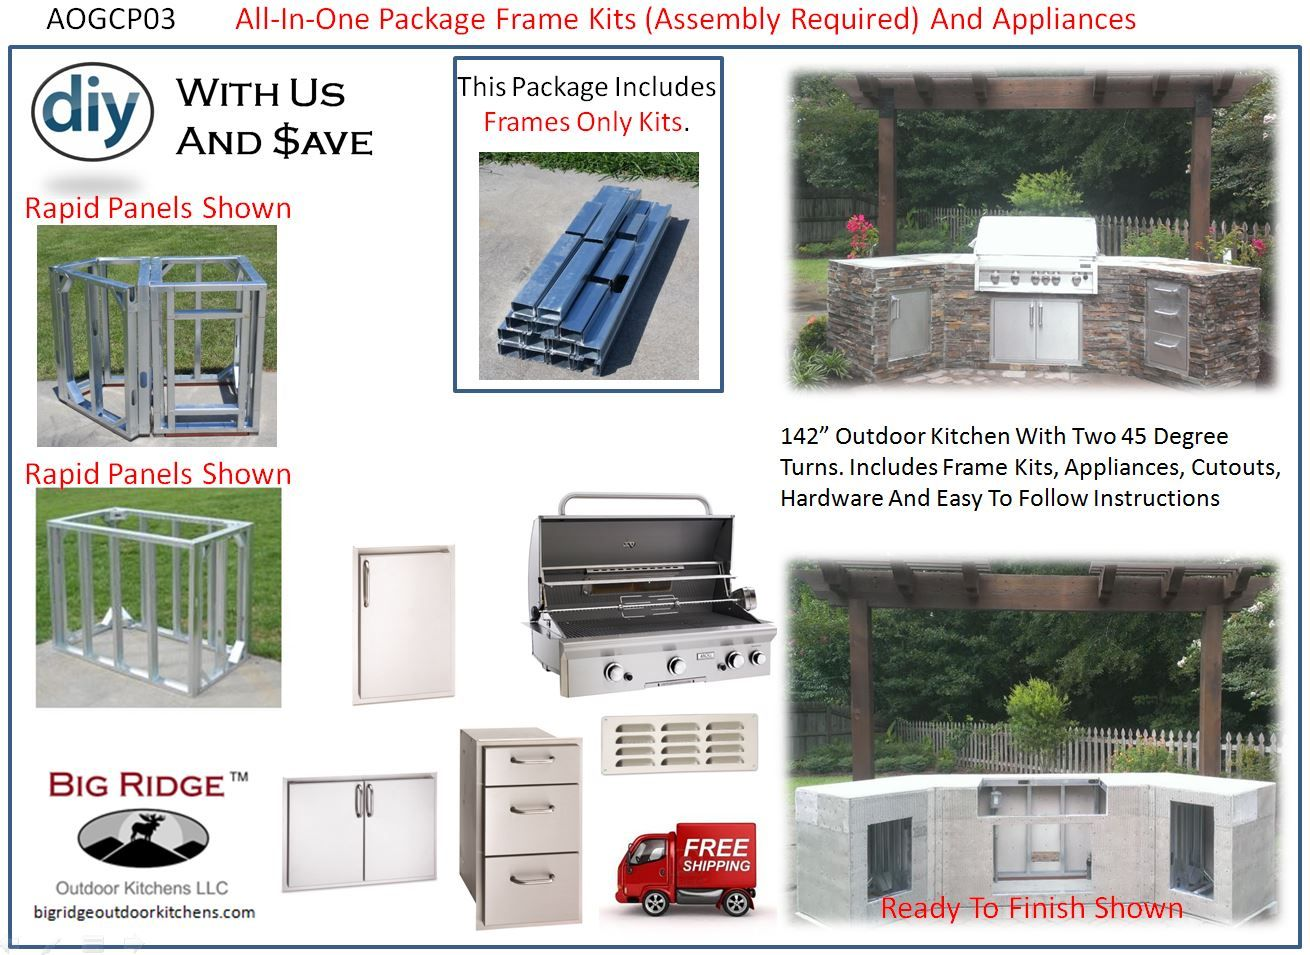 Complete Outdoor Kitchen Aogcp03 Outdoor Kitchen Kit Package Aog